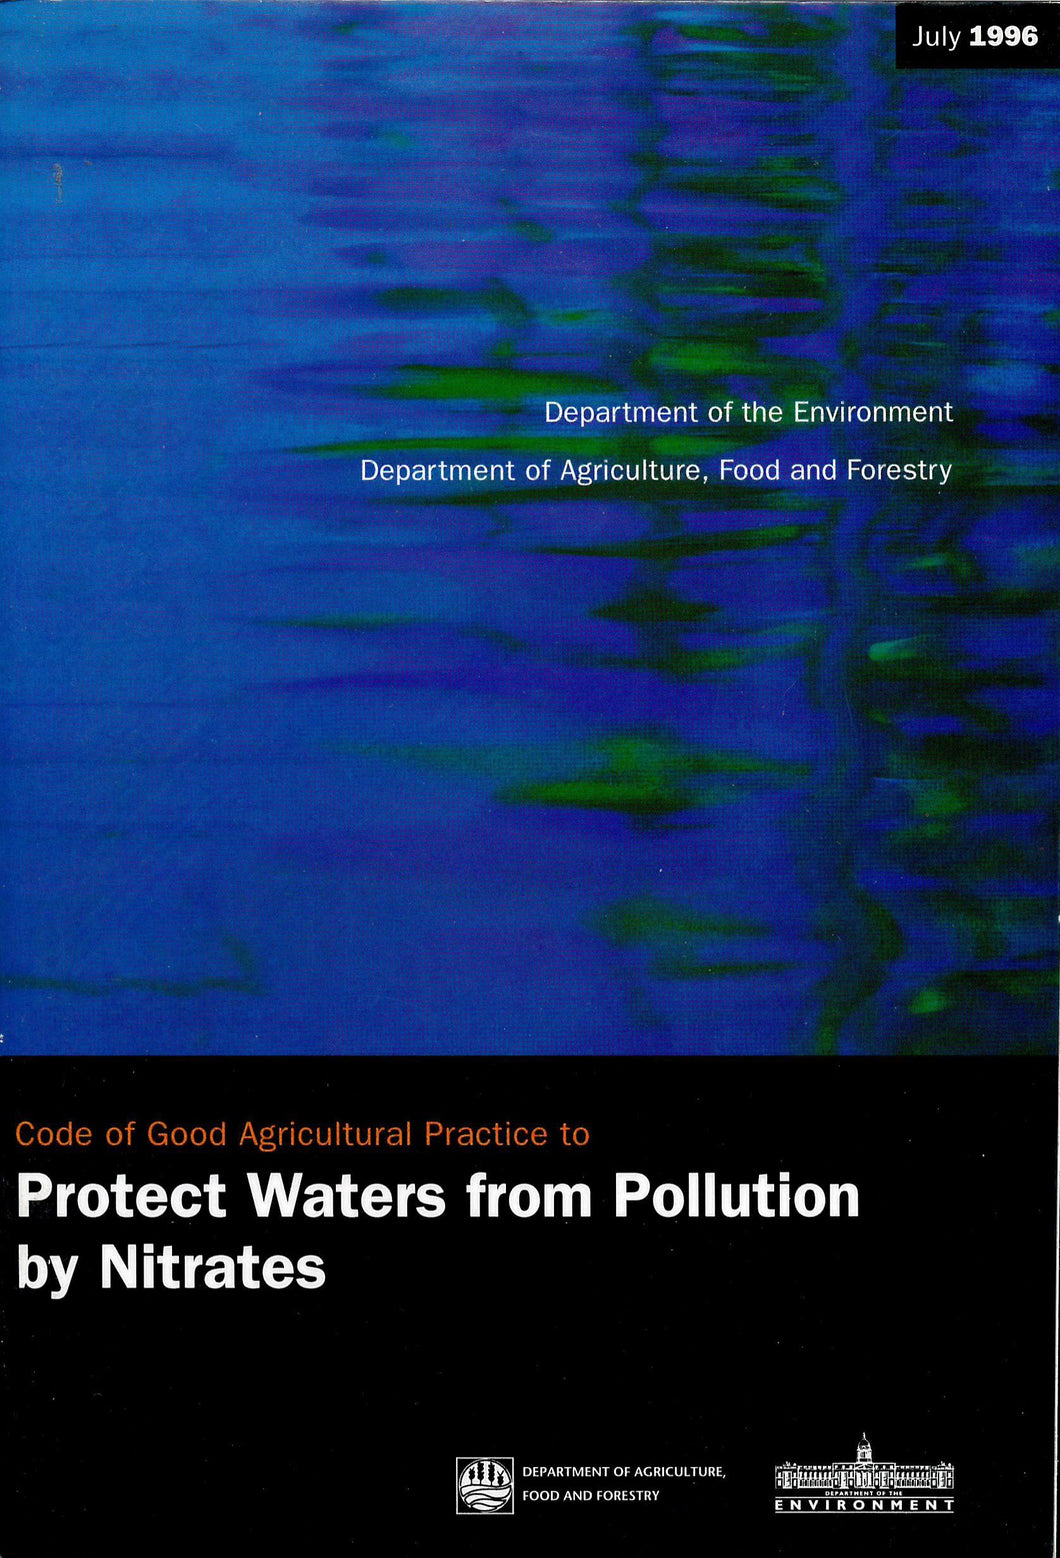 Code of good agricultural practice to protect waters from pollution by nitrates